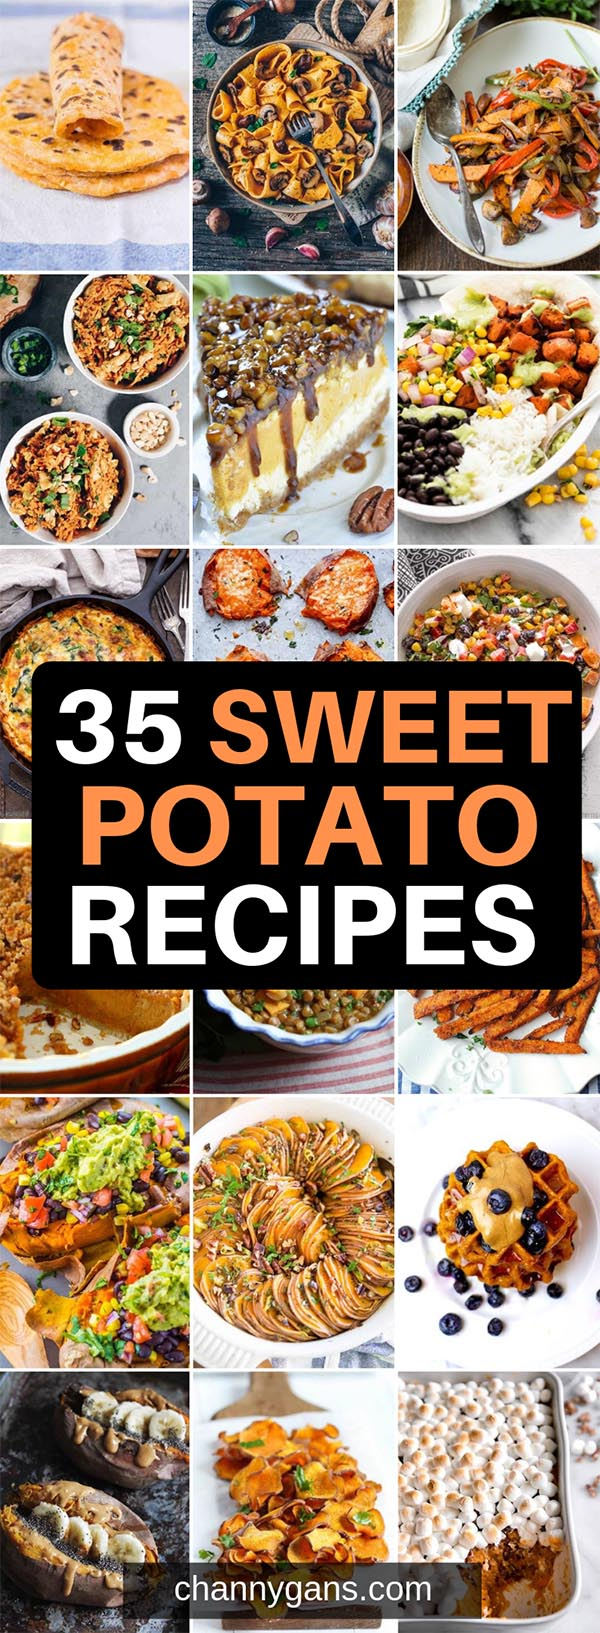 Sweet potatoes are so versatile, you can have them for breakfast, lunch or dinner and even dessert! Enjoy these 35 delectable sweet potato recipes.